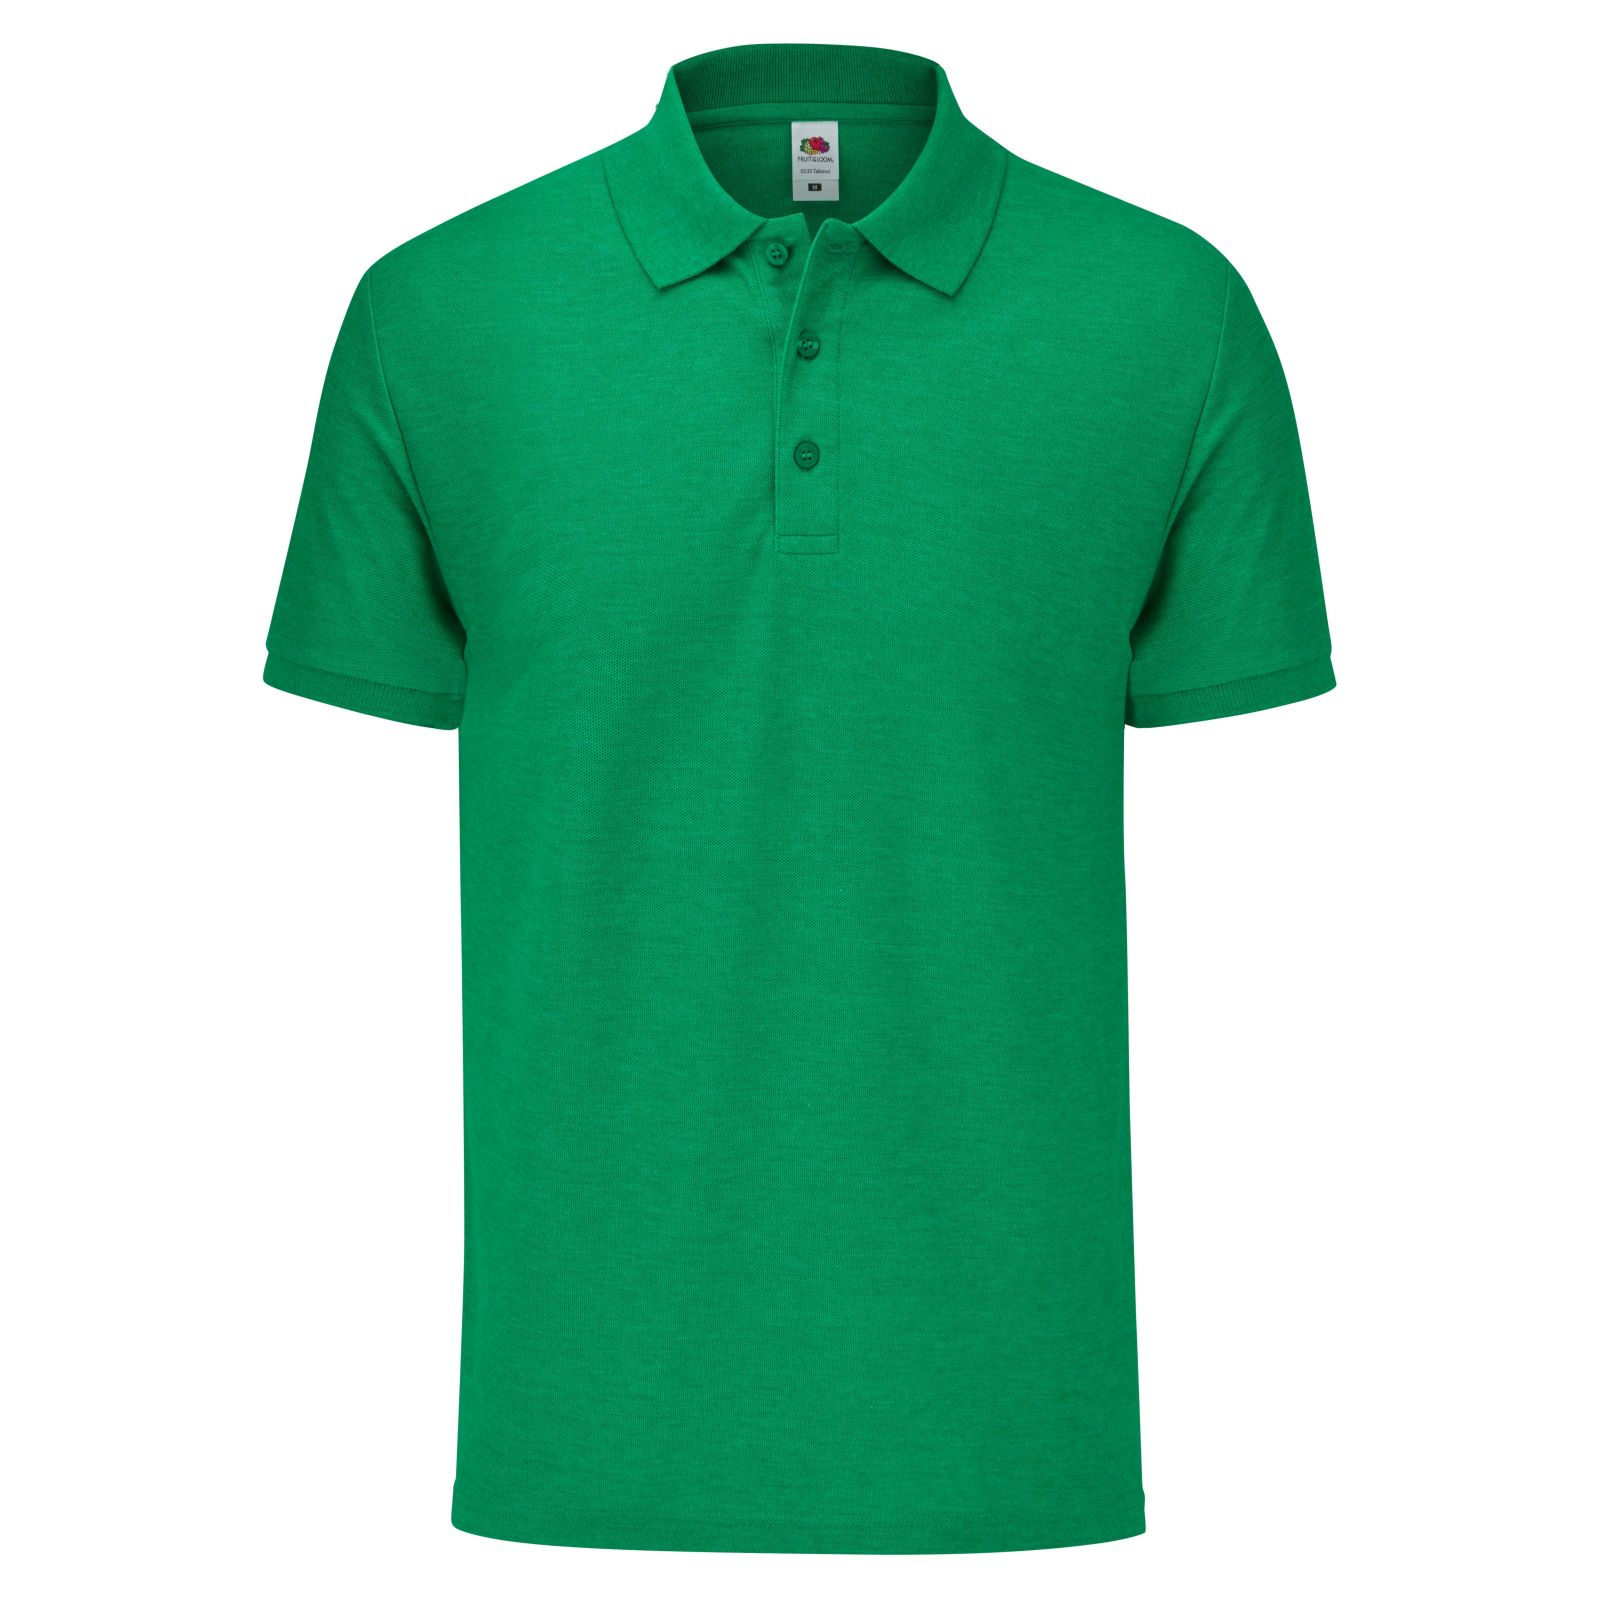 Fruit of the Loom Mens Tailored Polo Shirt (L) (Bottle Green)